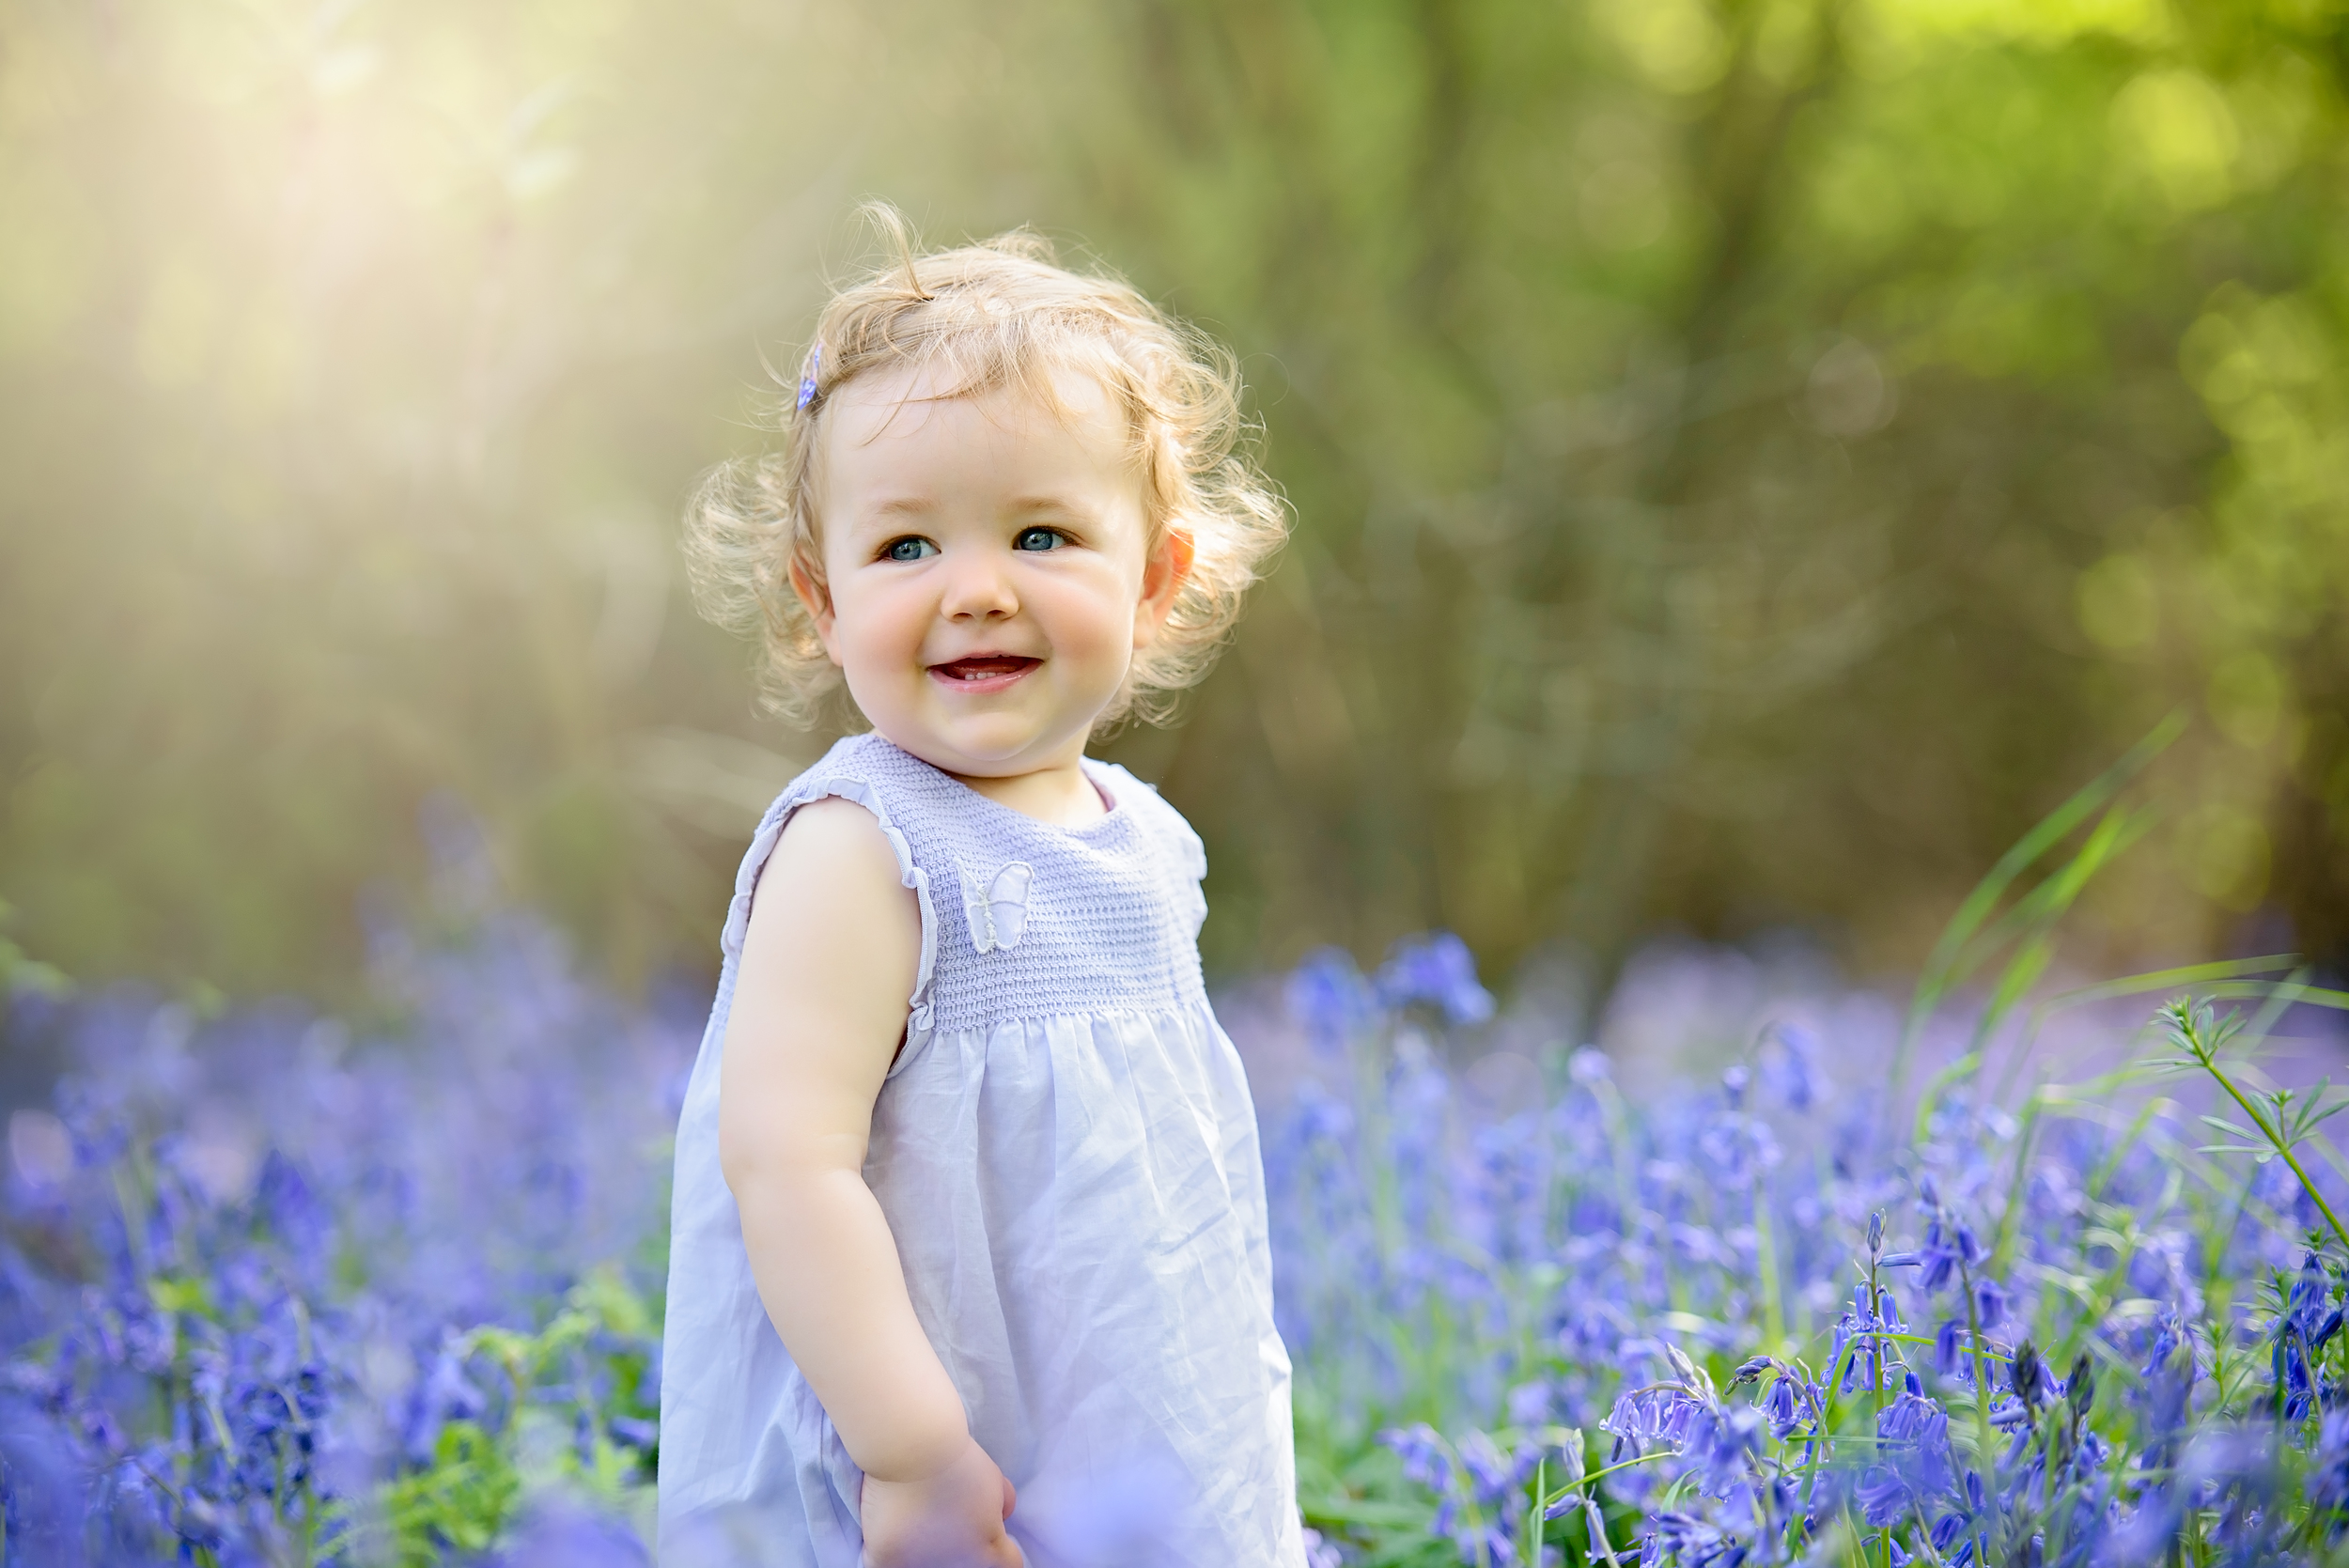 Toddler photography in London | Bluebell photoshoot